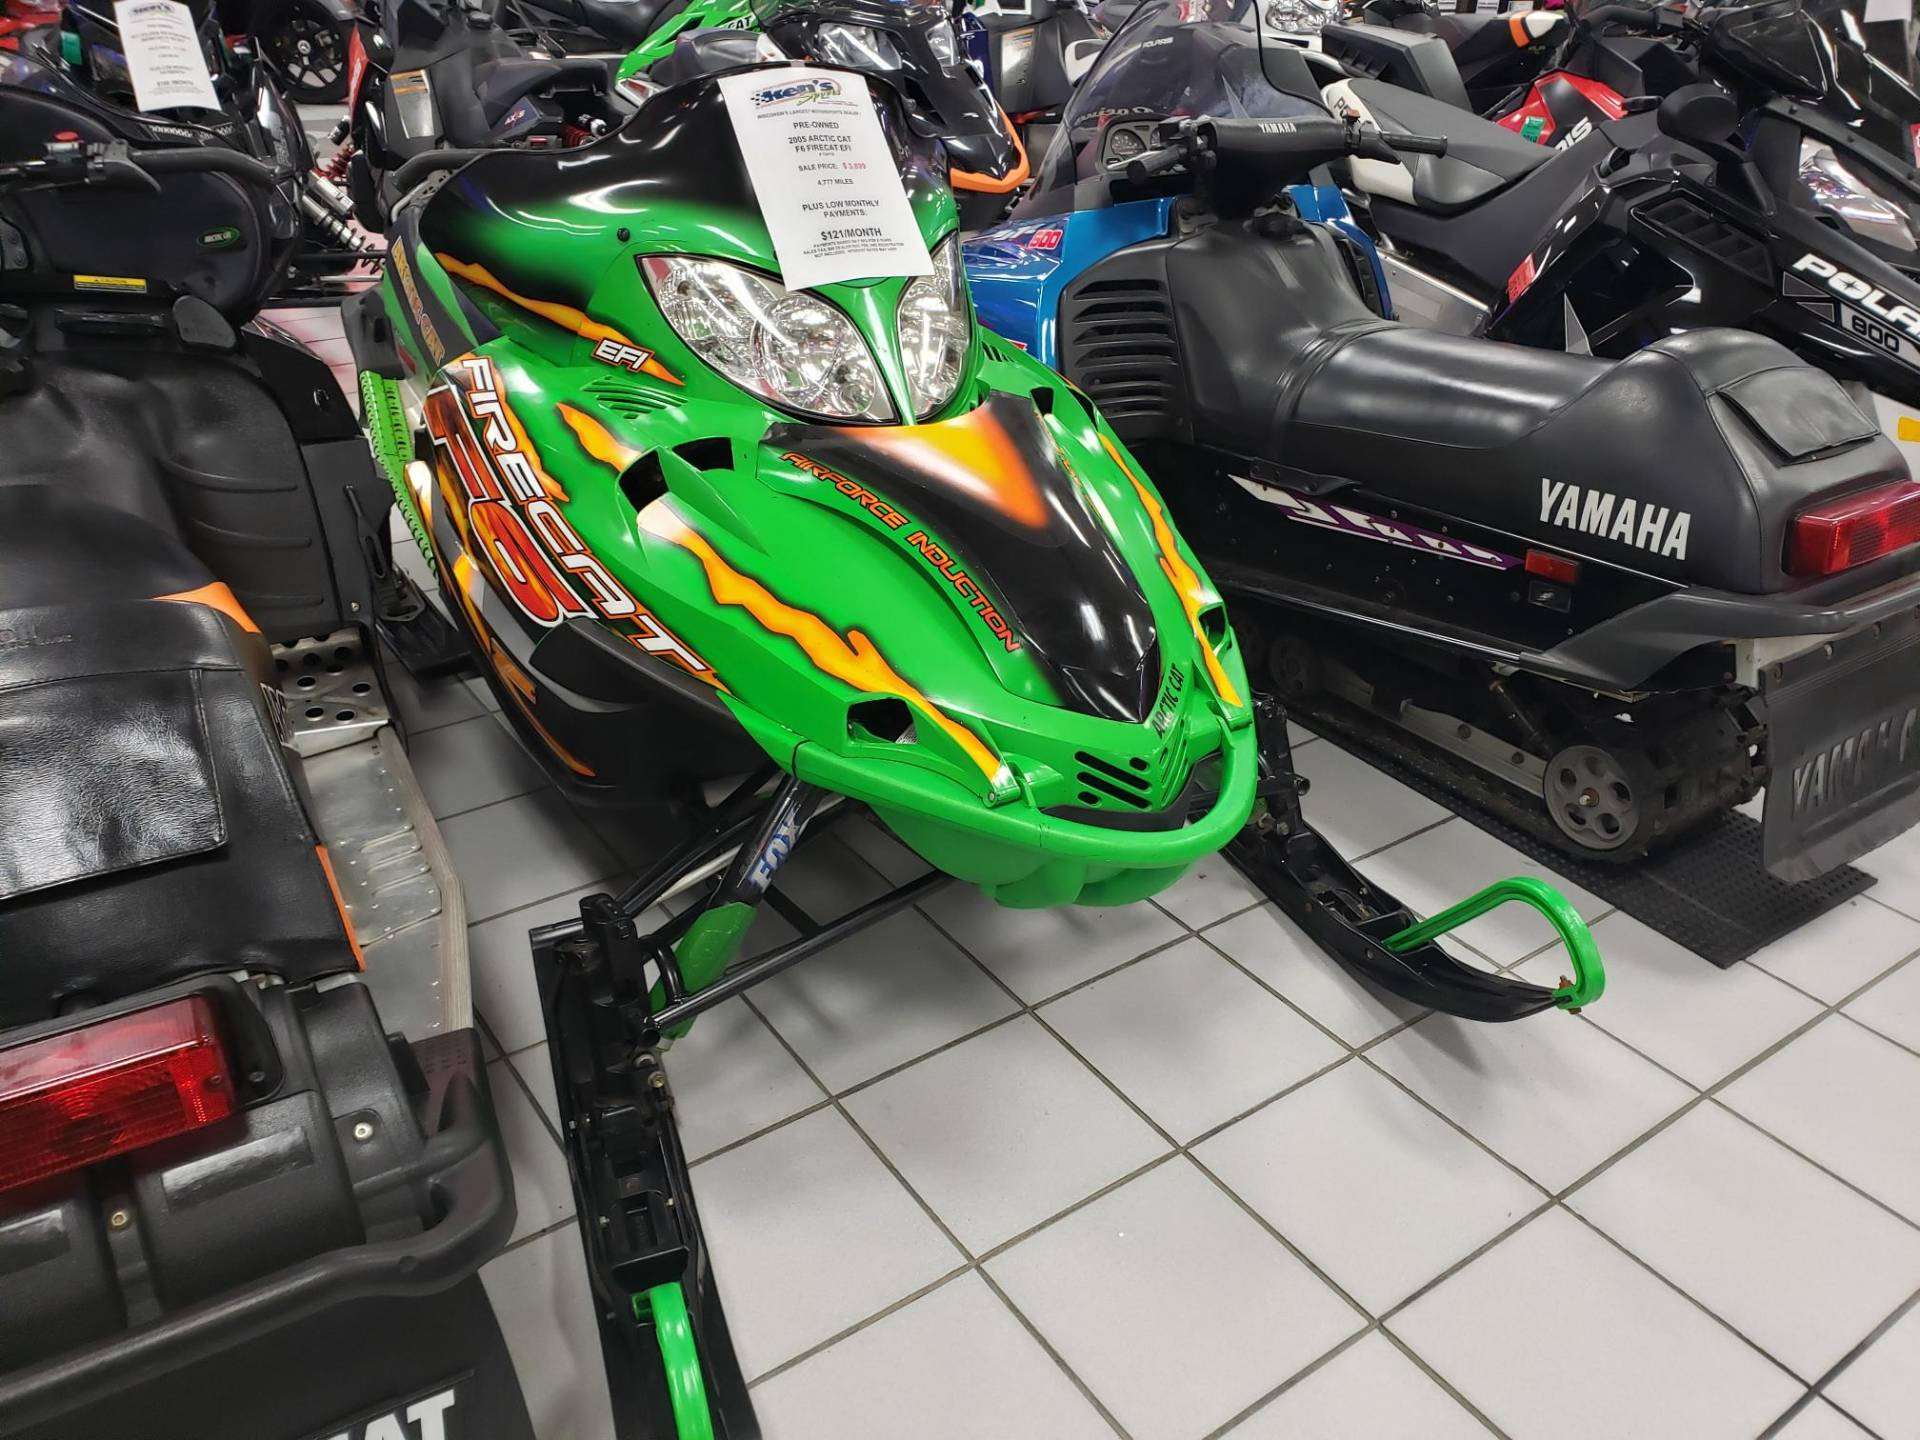 2005 Arctic Cat F6 Firecat EFI for sale 41392